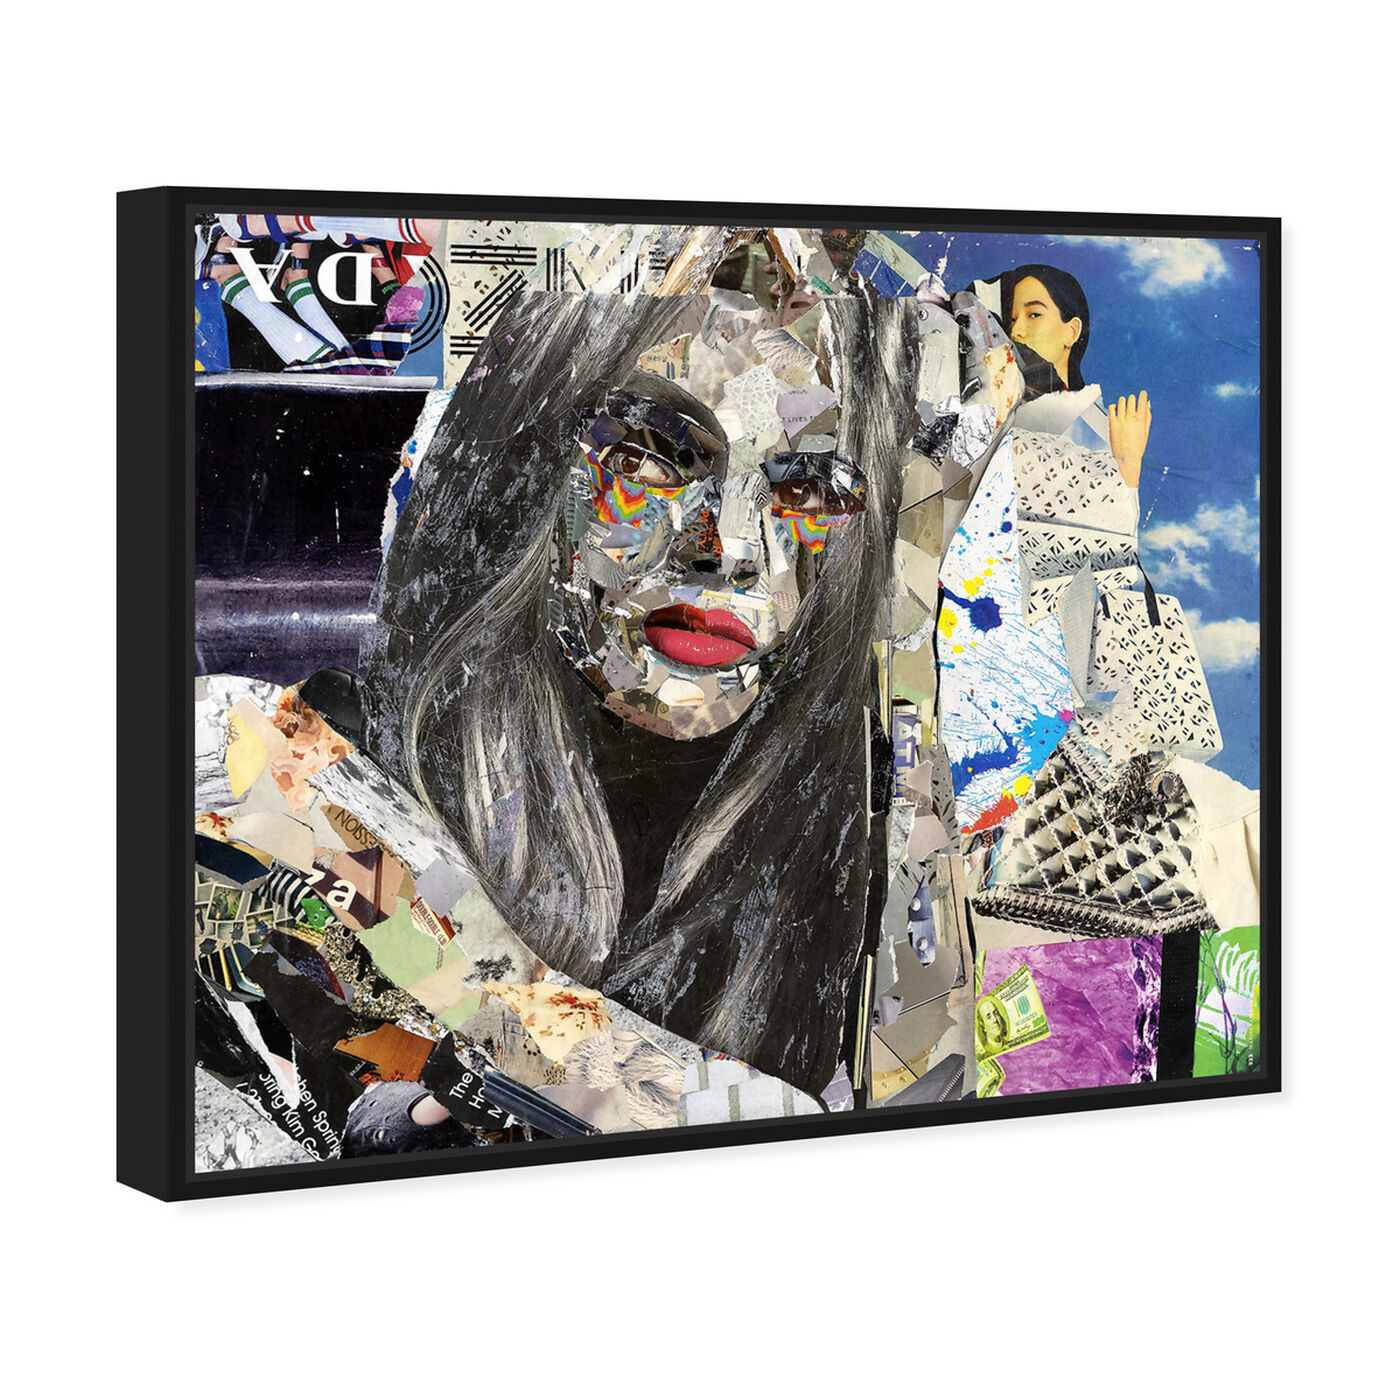 Angled view of Katy Hirschfeld - Elegant Flow featuring fashion and glam and portraits art.